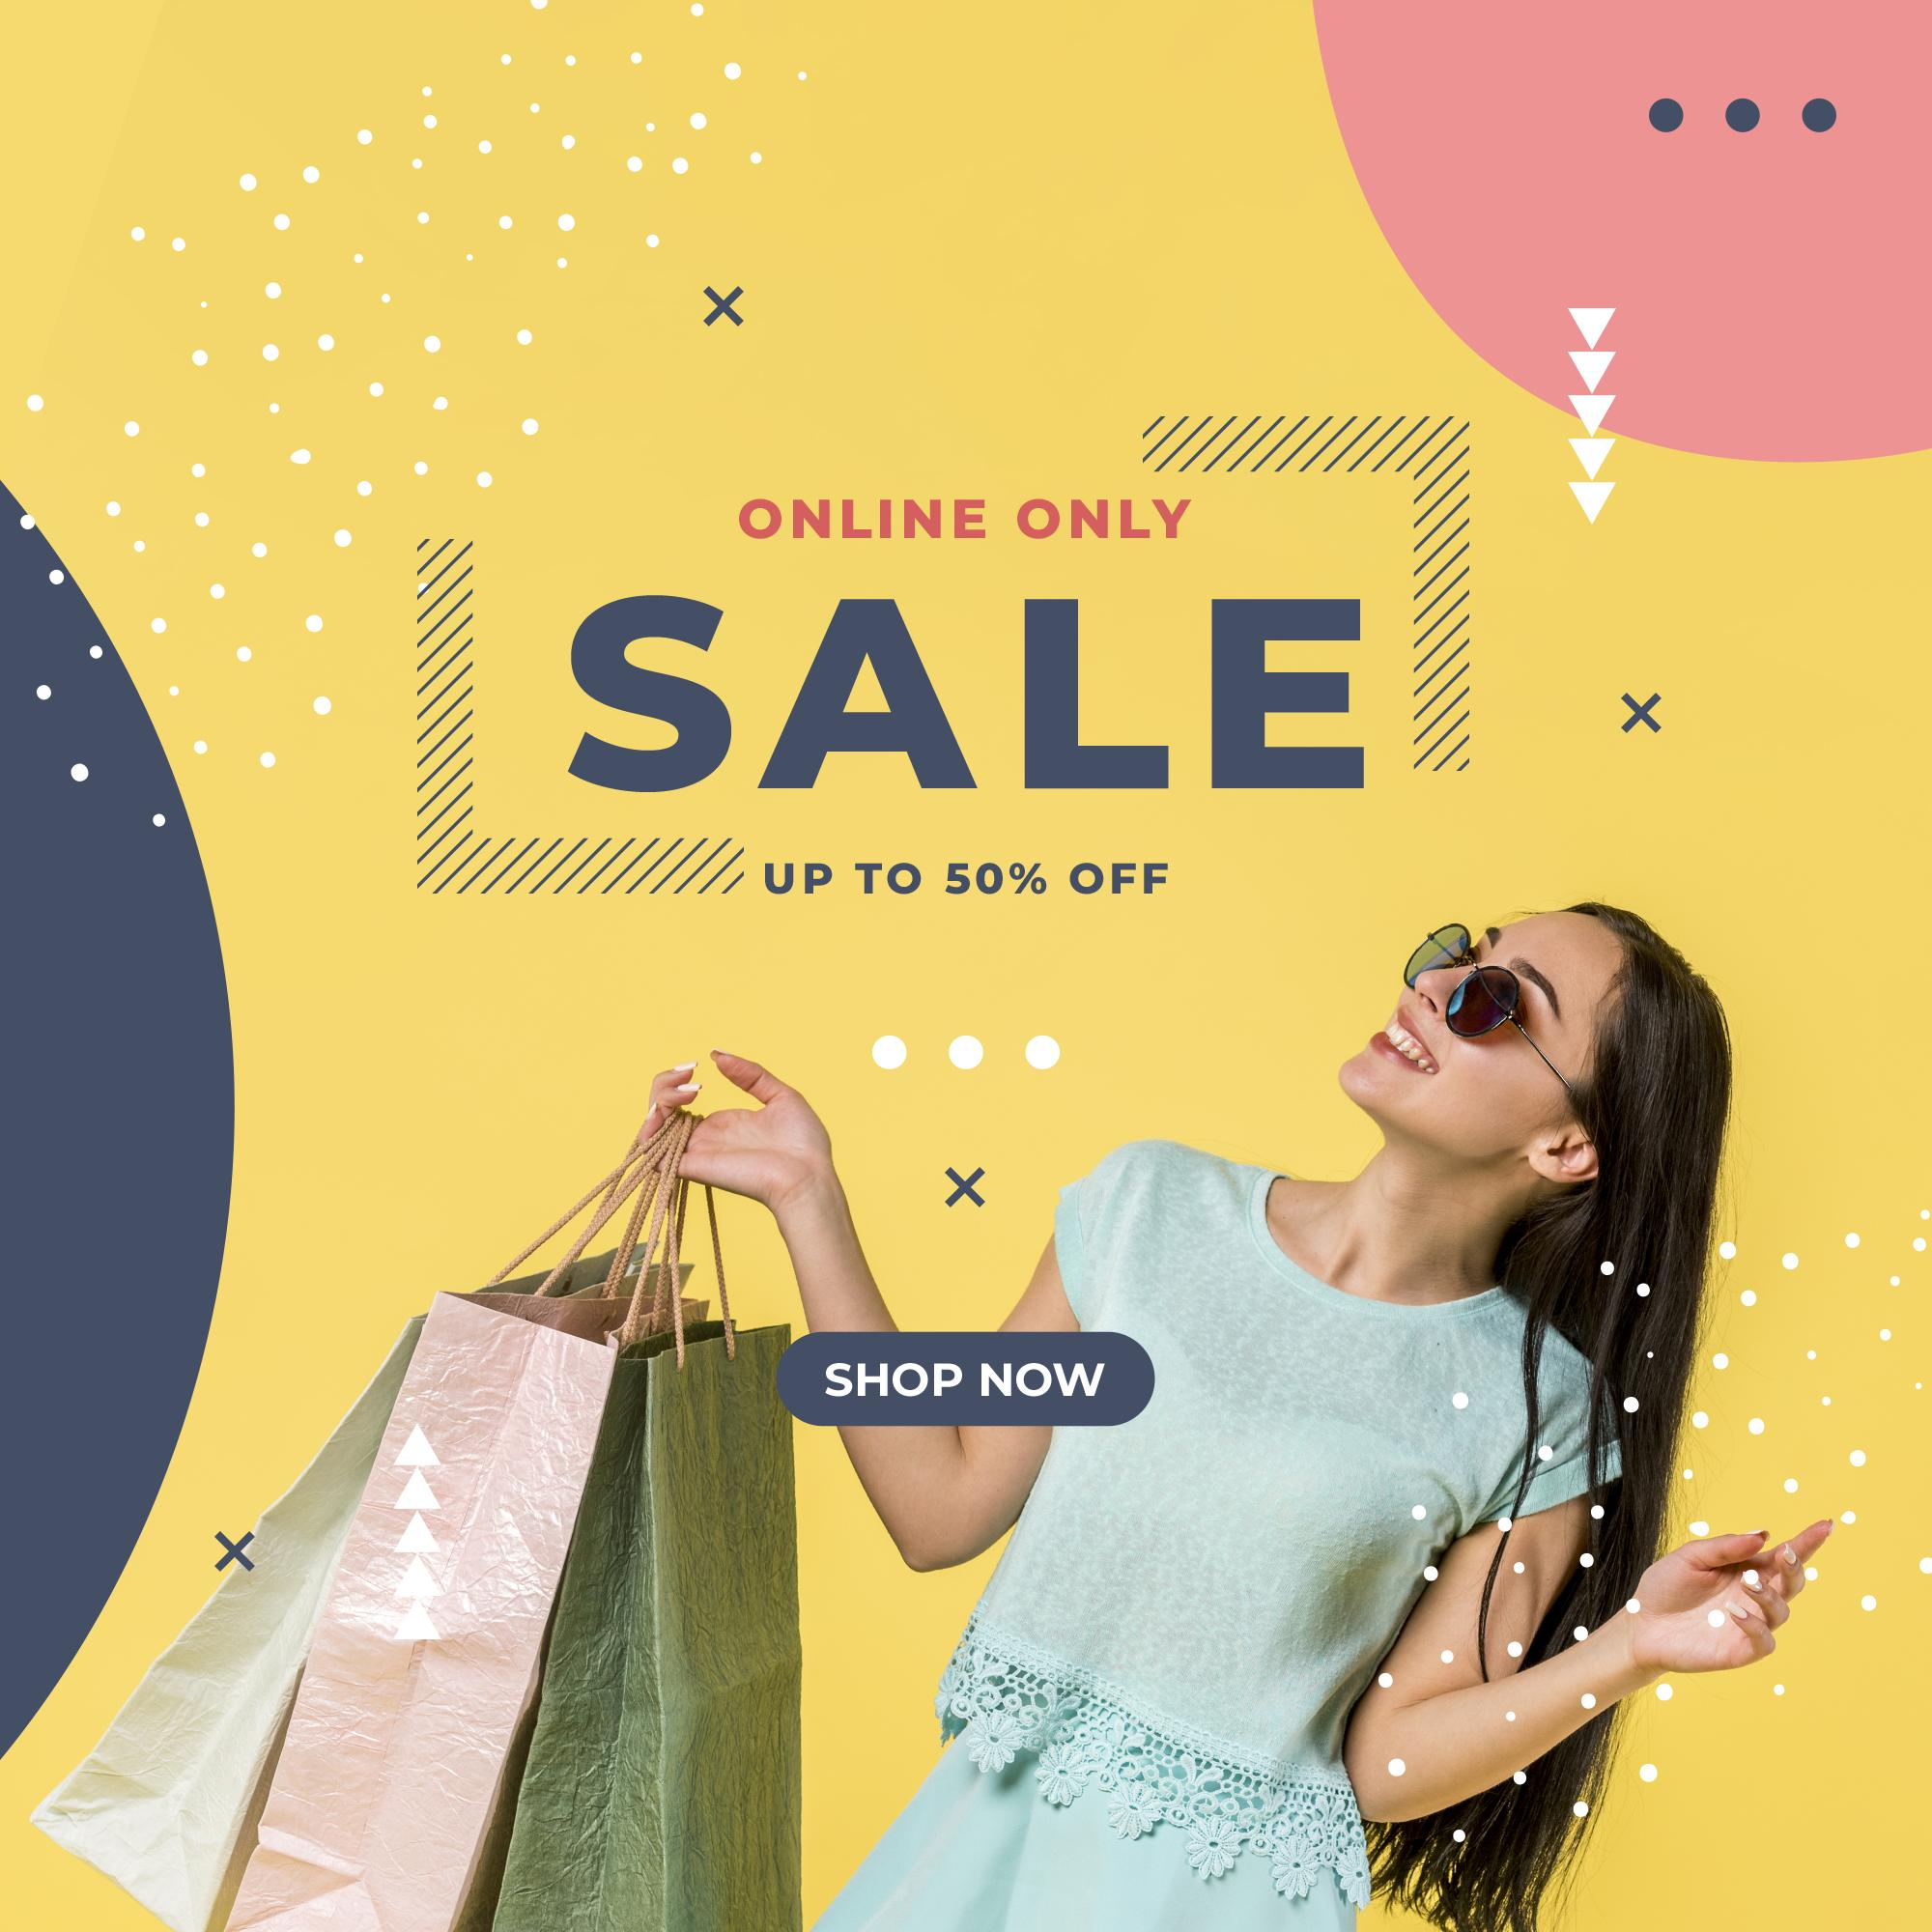 Club Factory   Online Shopping App for Android   APK Download